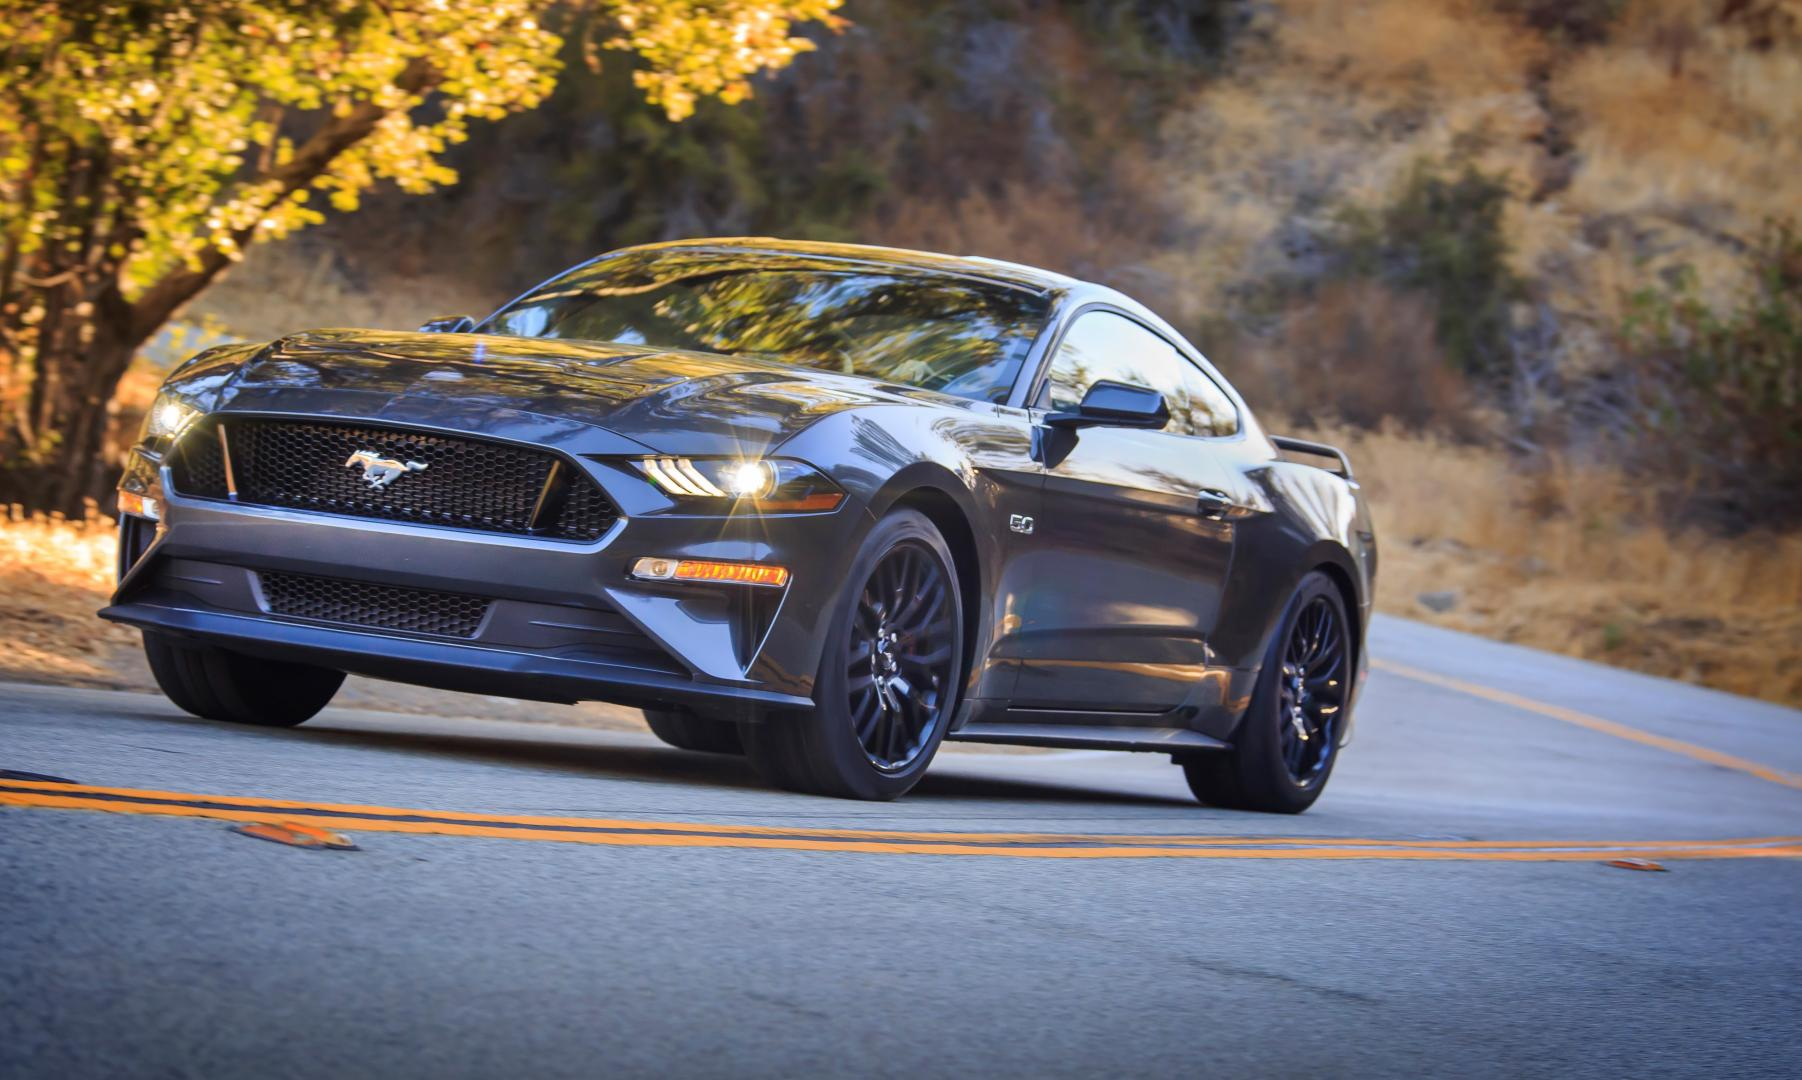 Ford Mustang Magnetic Grey 5.0 V8